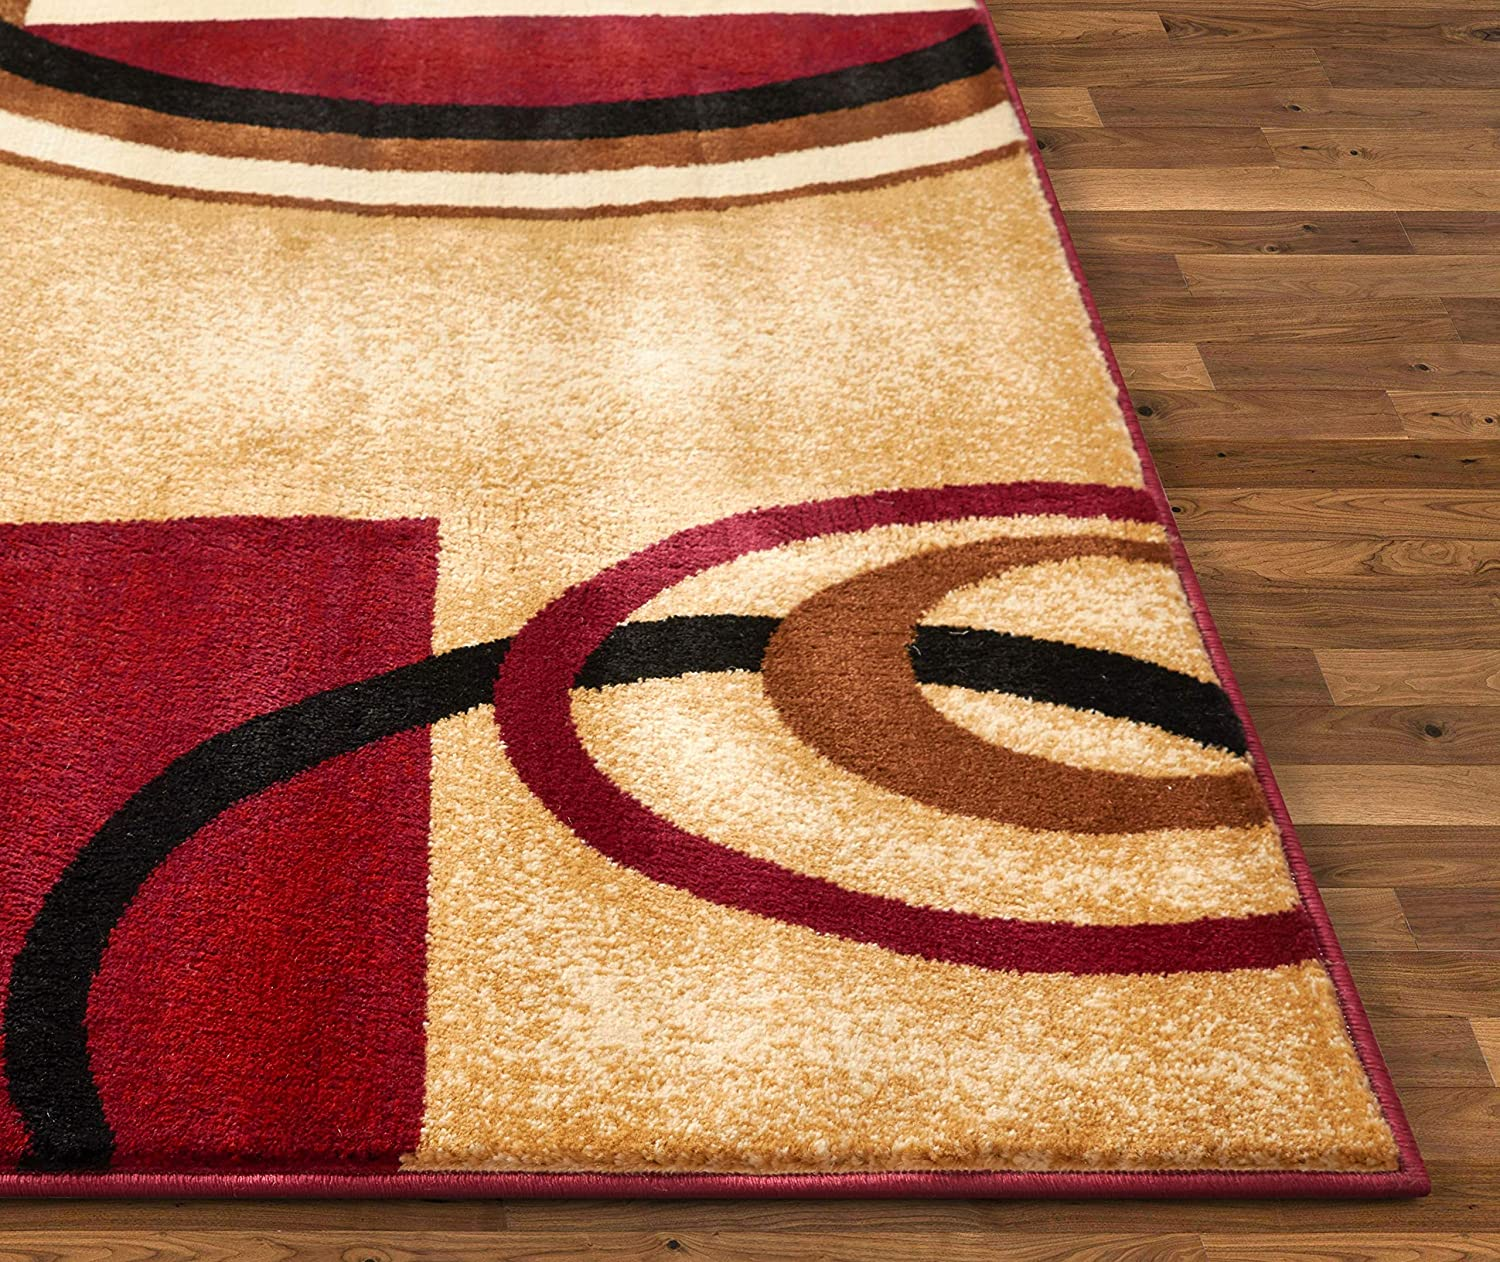 Well Woven Deco Rings Red Geometric Modern Casual 4 Round 67x120 Cm Area Rug Easy To Clean Stain Fade Resistant Shed Free Abstract Contemporary Colour Block Boxes Lines Soft Living Dining Room Rug